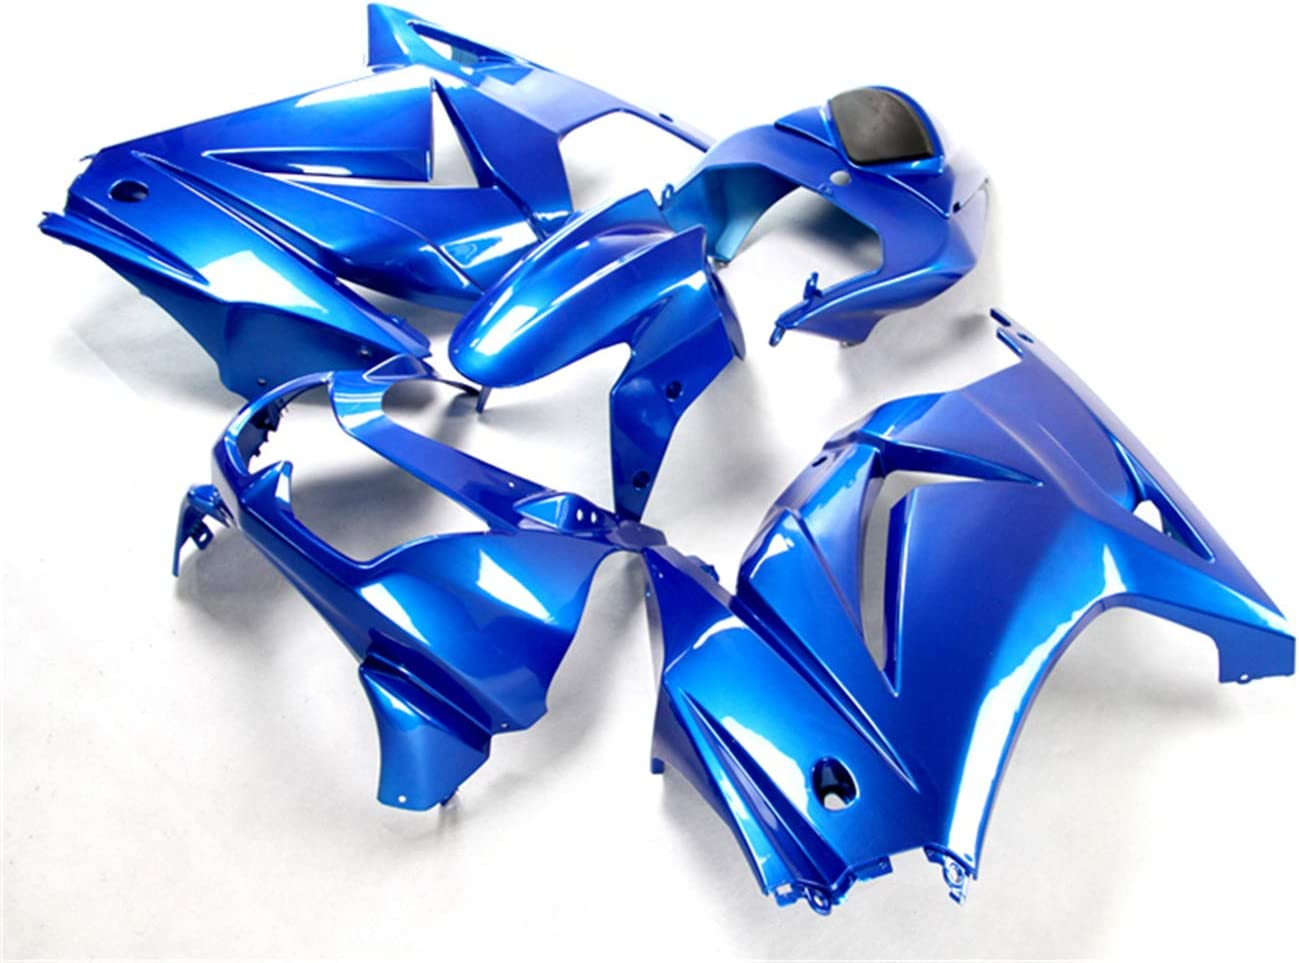 NT FAIRING Glossy Blue Fairing Fit for KAWASAKI NINJA 2008-2012 EX250 250R New Injection Mold ABS Plastics Bodywork Body Kit Bodyframe Body Work 2009 2010 2011 08 09 10 11 12